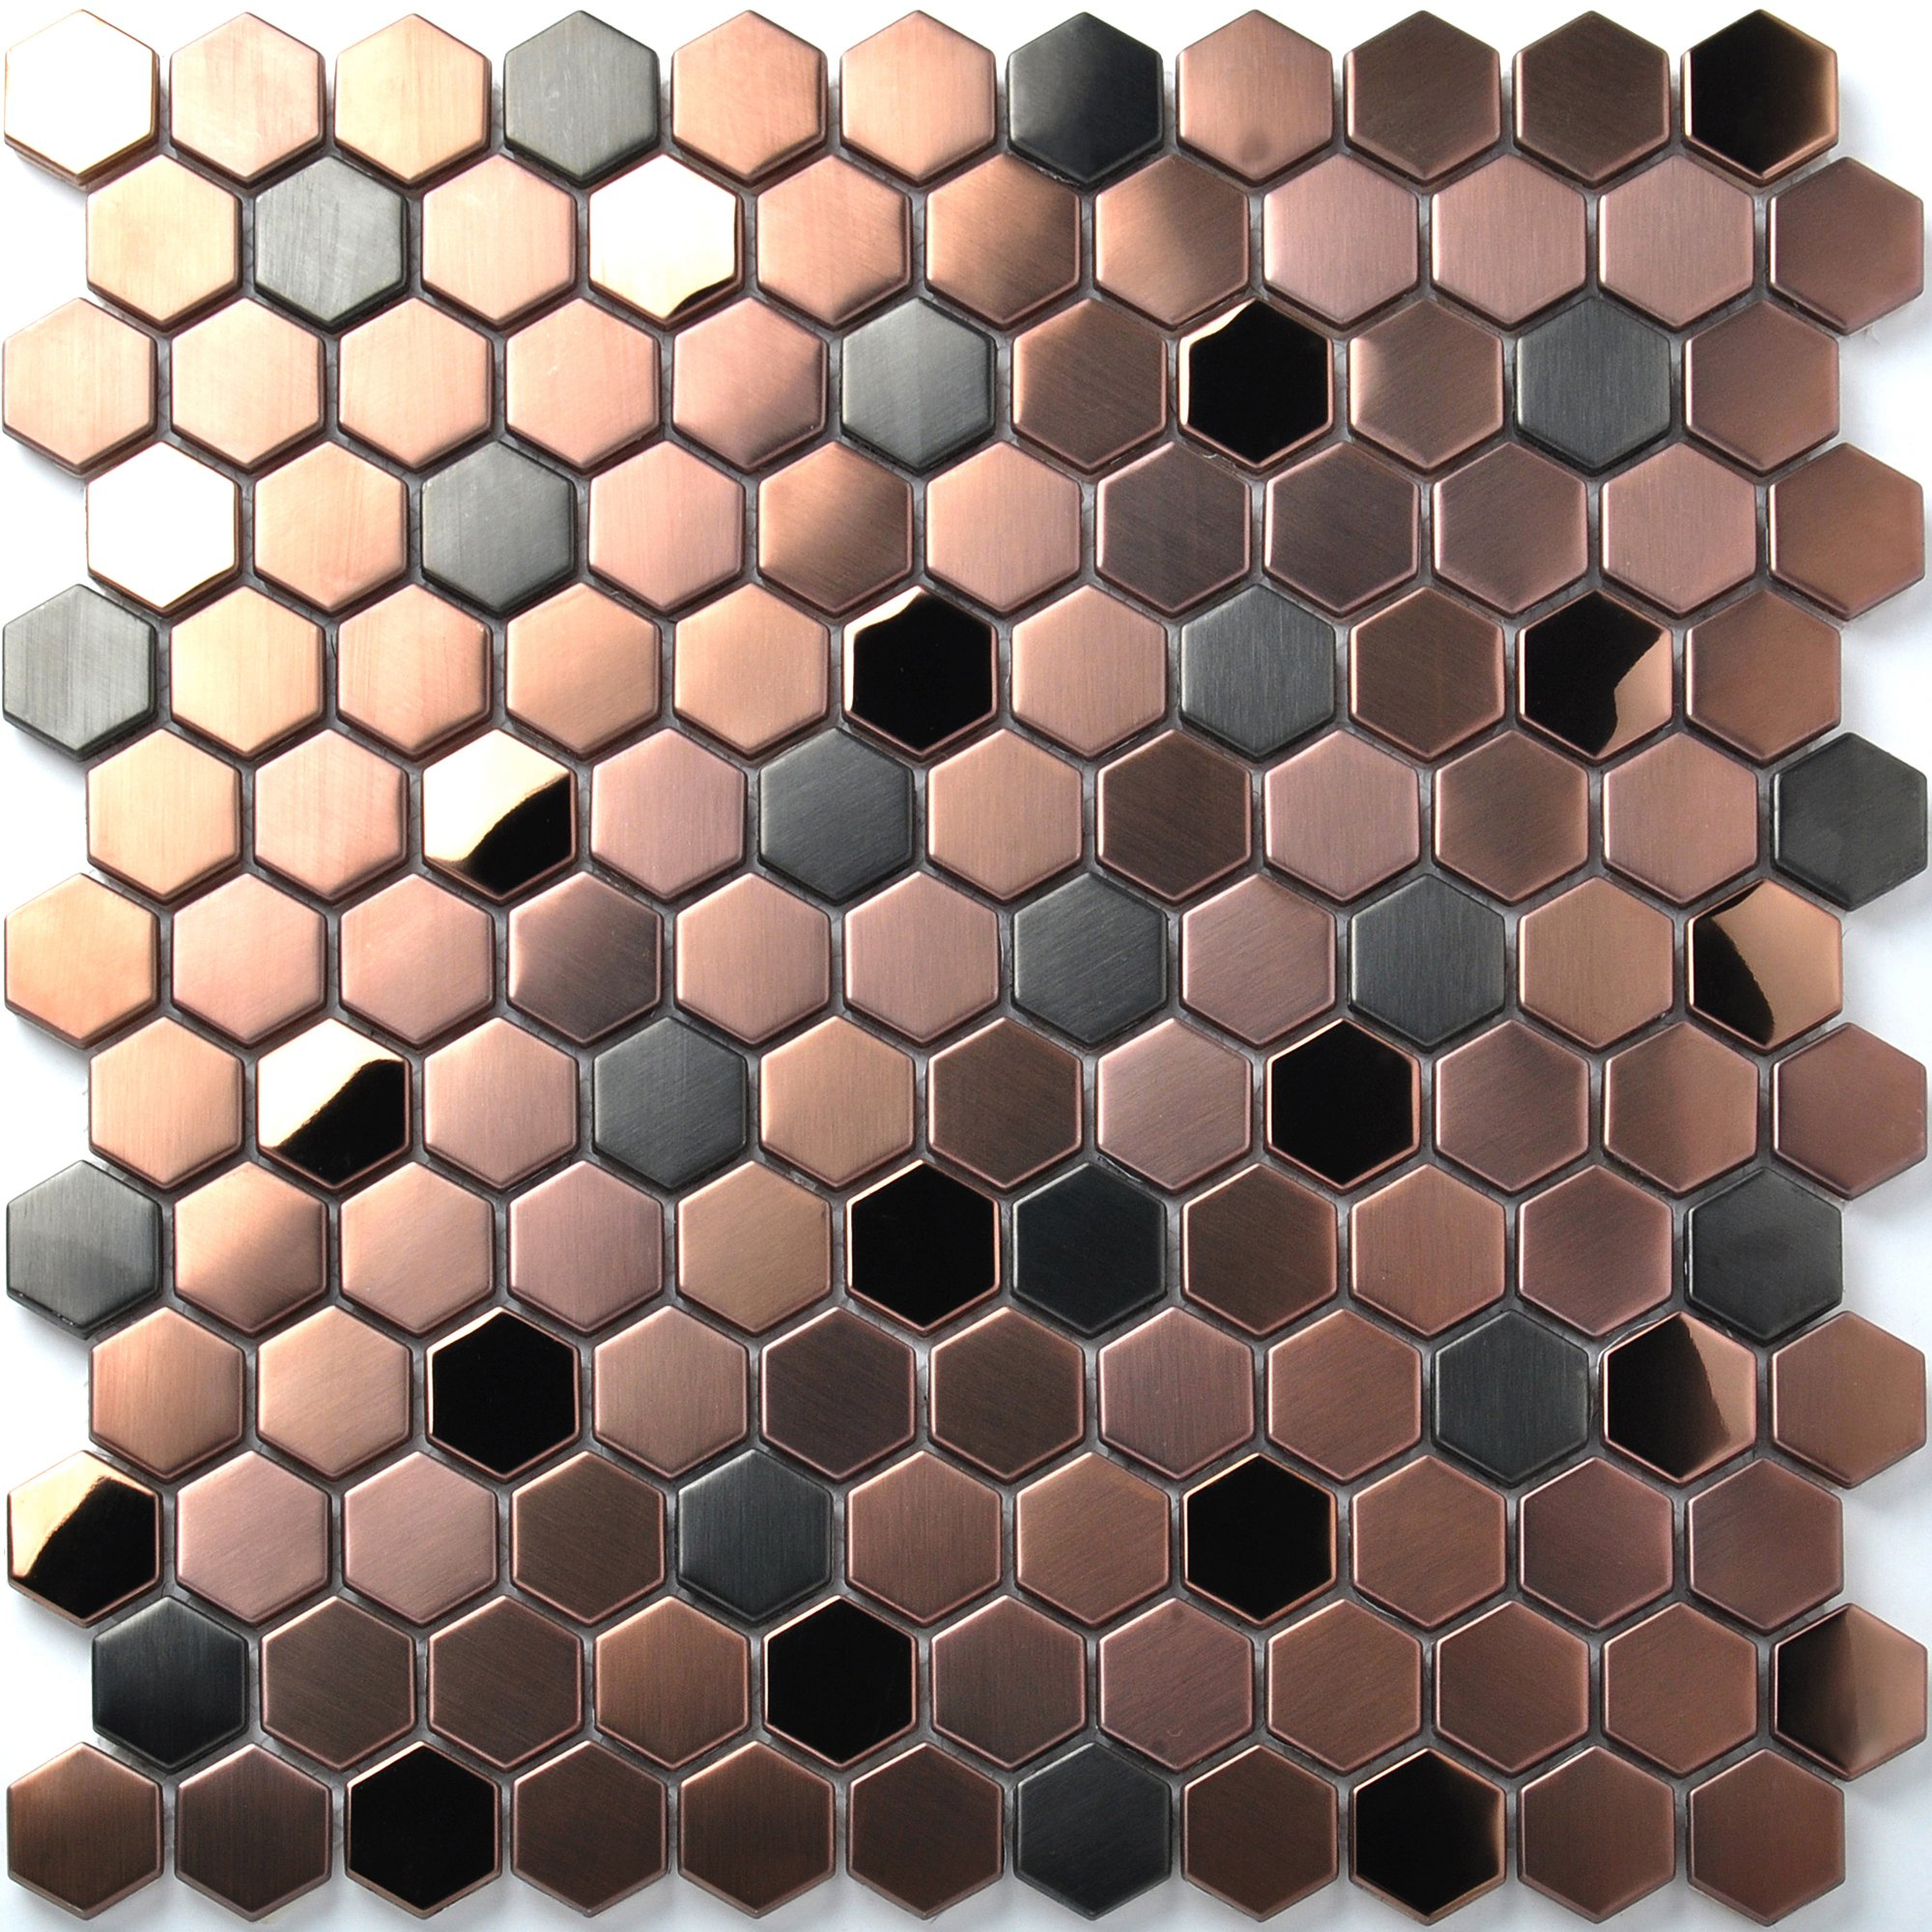 Hexagon Stainless Steel Brushed Mosaic Tile Rose Gold Black Bathroom Shower Floor Tiles TSTMBT021 (11 PCS [12'' X 12''/each])